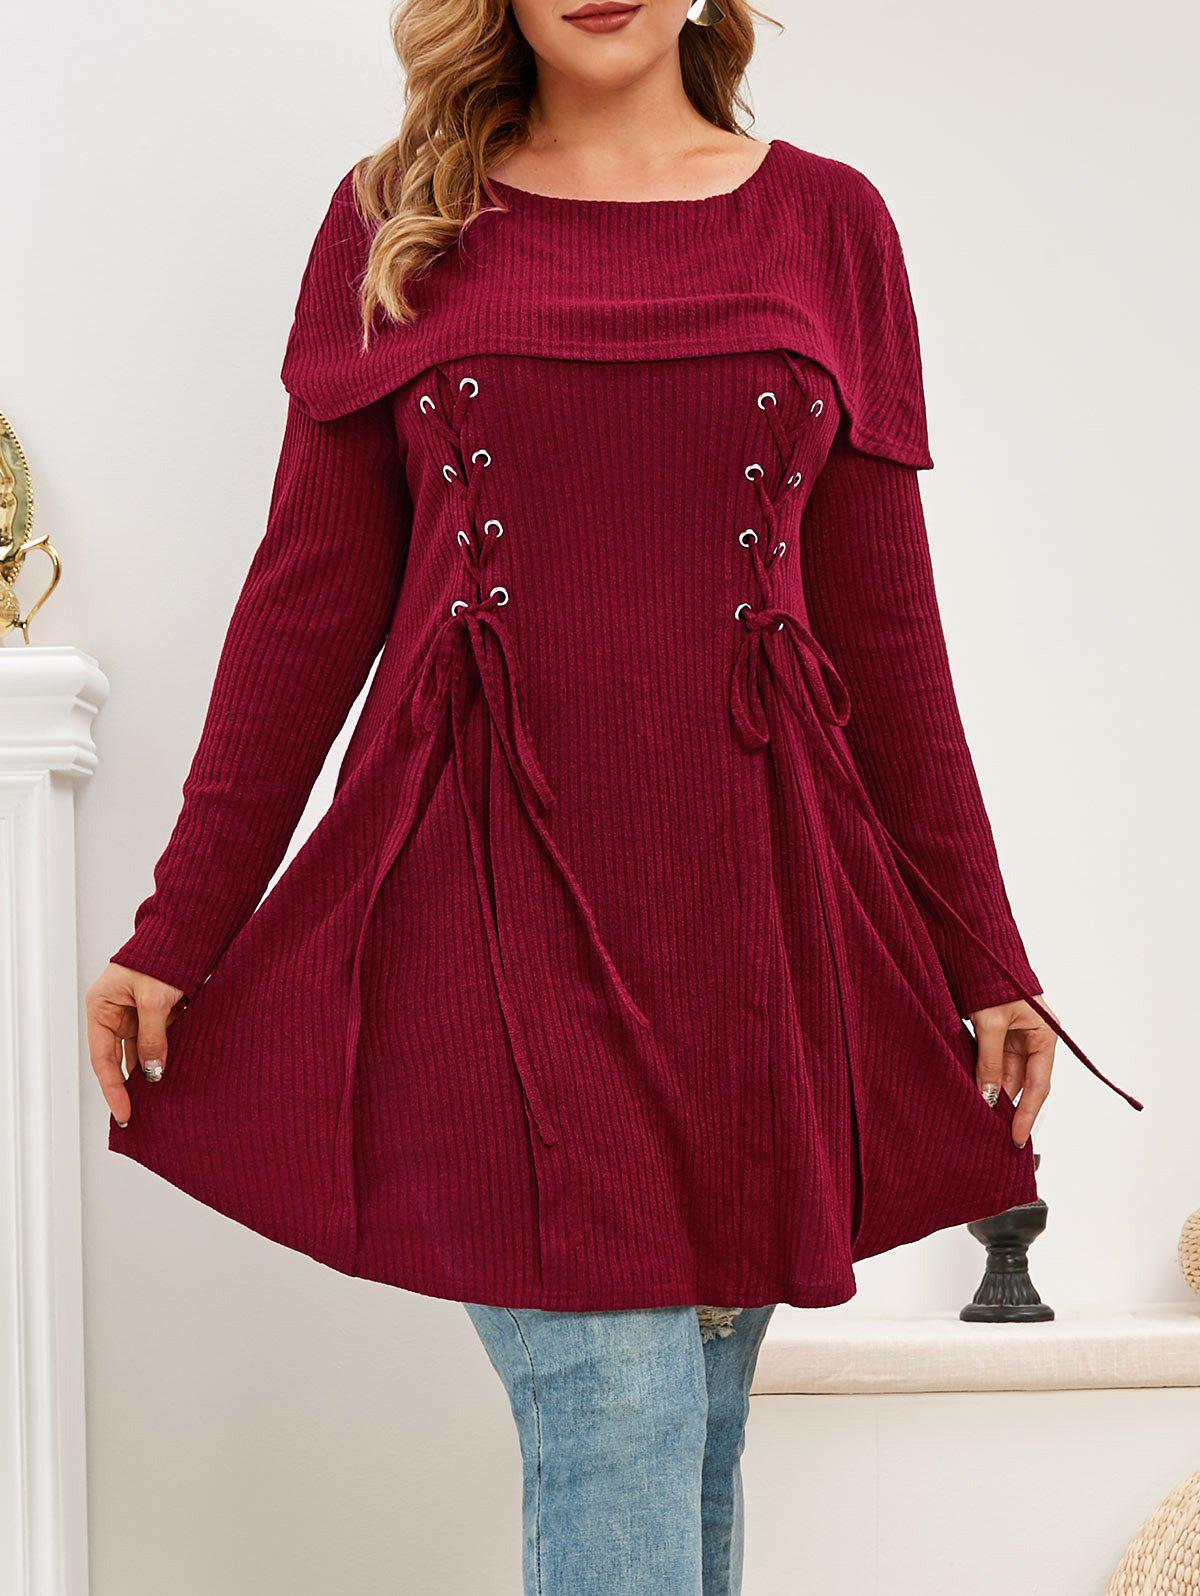 Plus Size Lace Up Foldover Knitwear - DEEP RED 3X